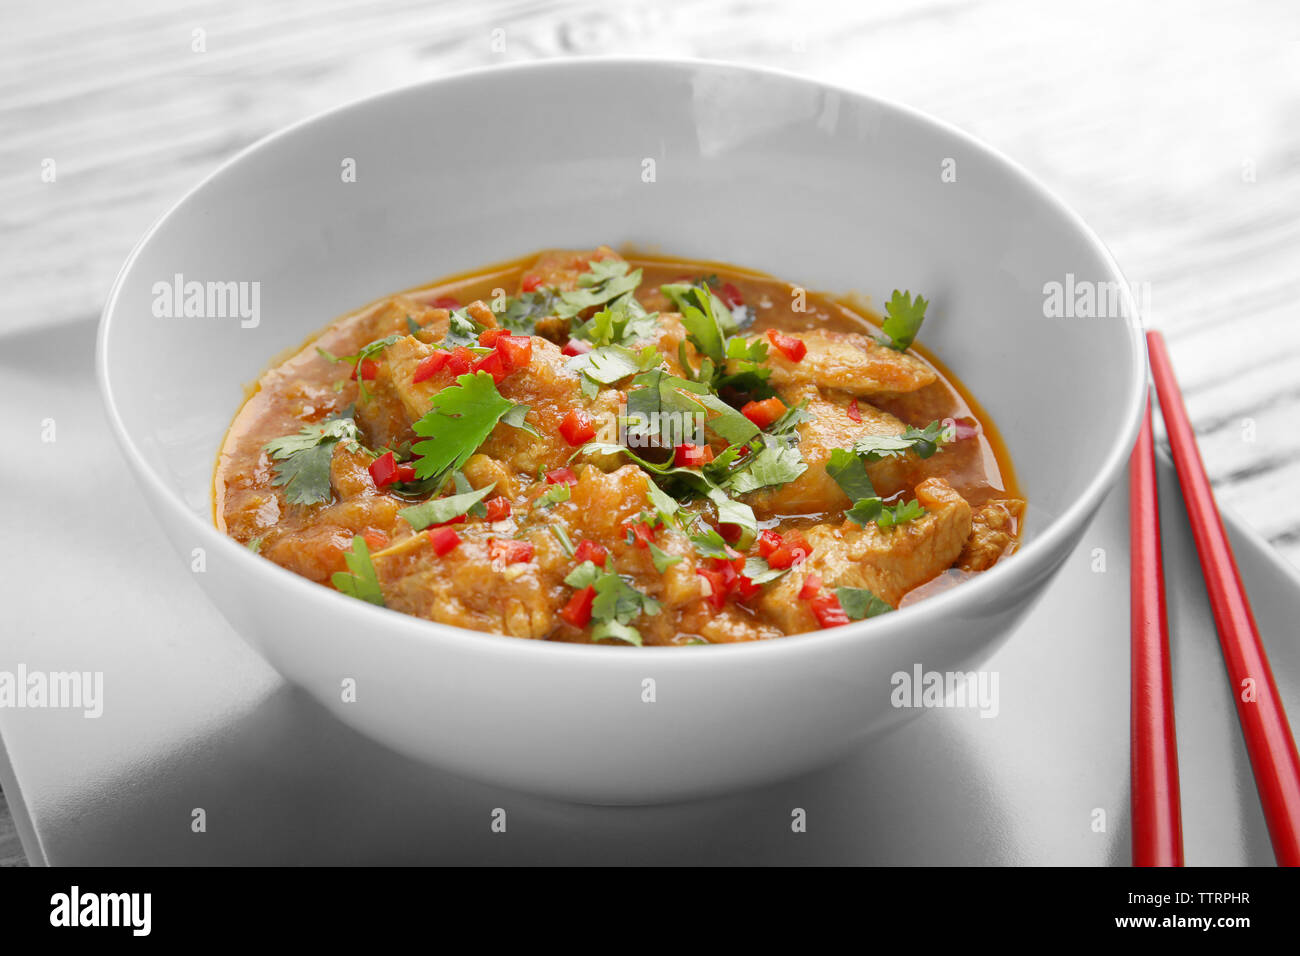 Tasty chicken curry in plate and chopsticks, closeup - Stock Image